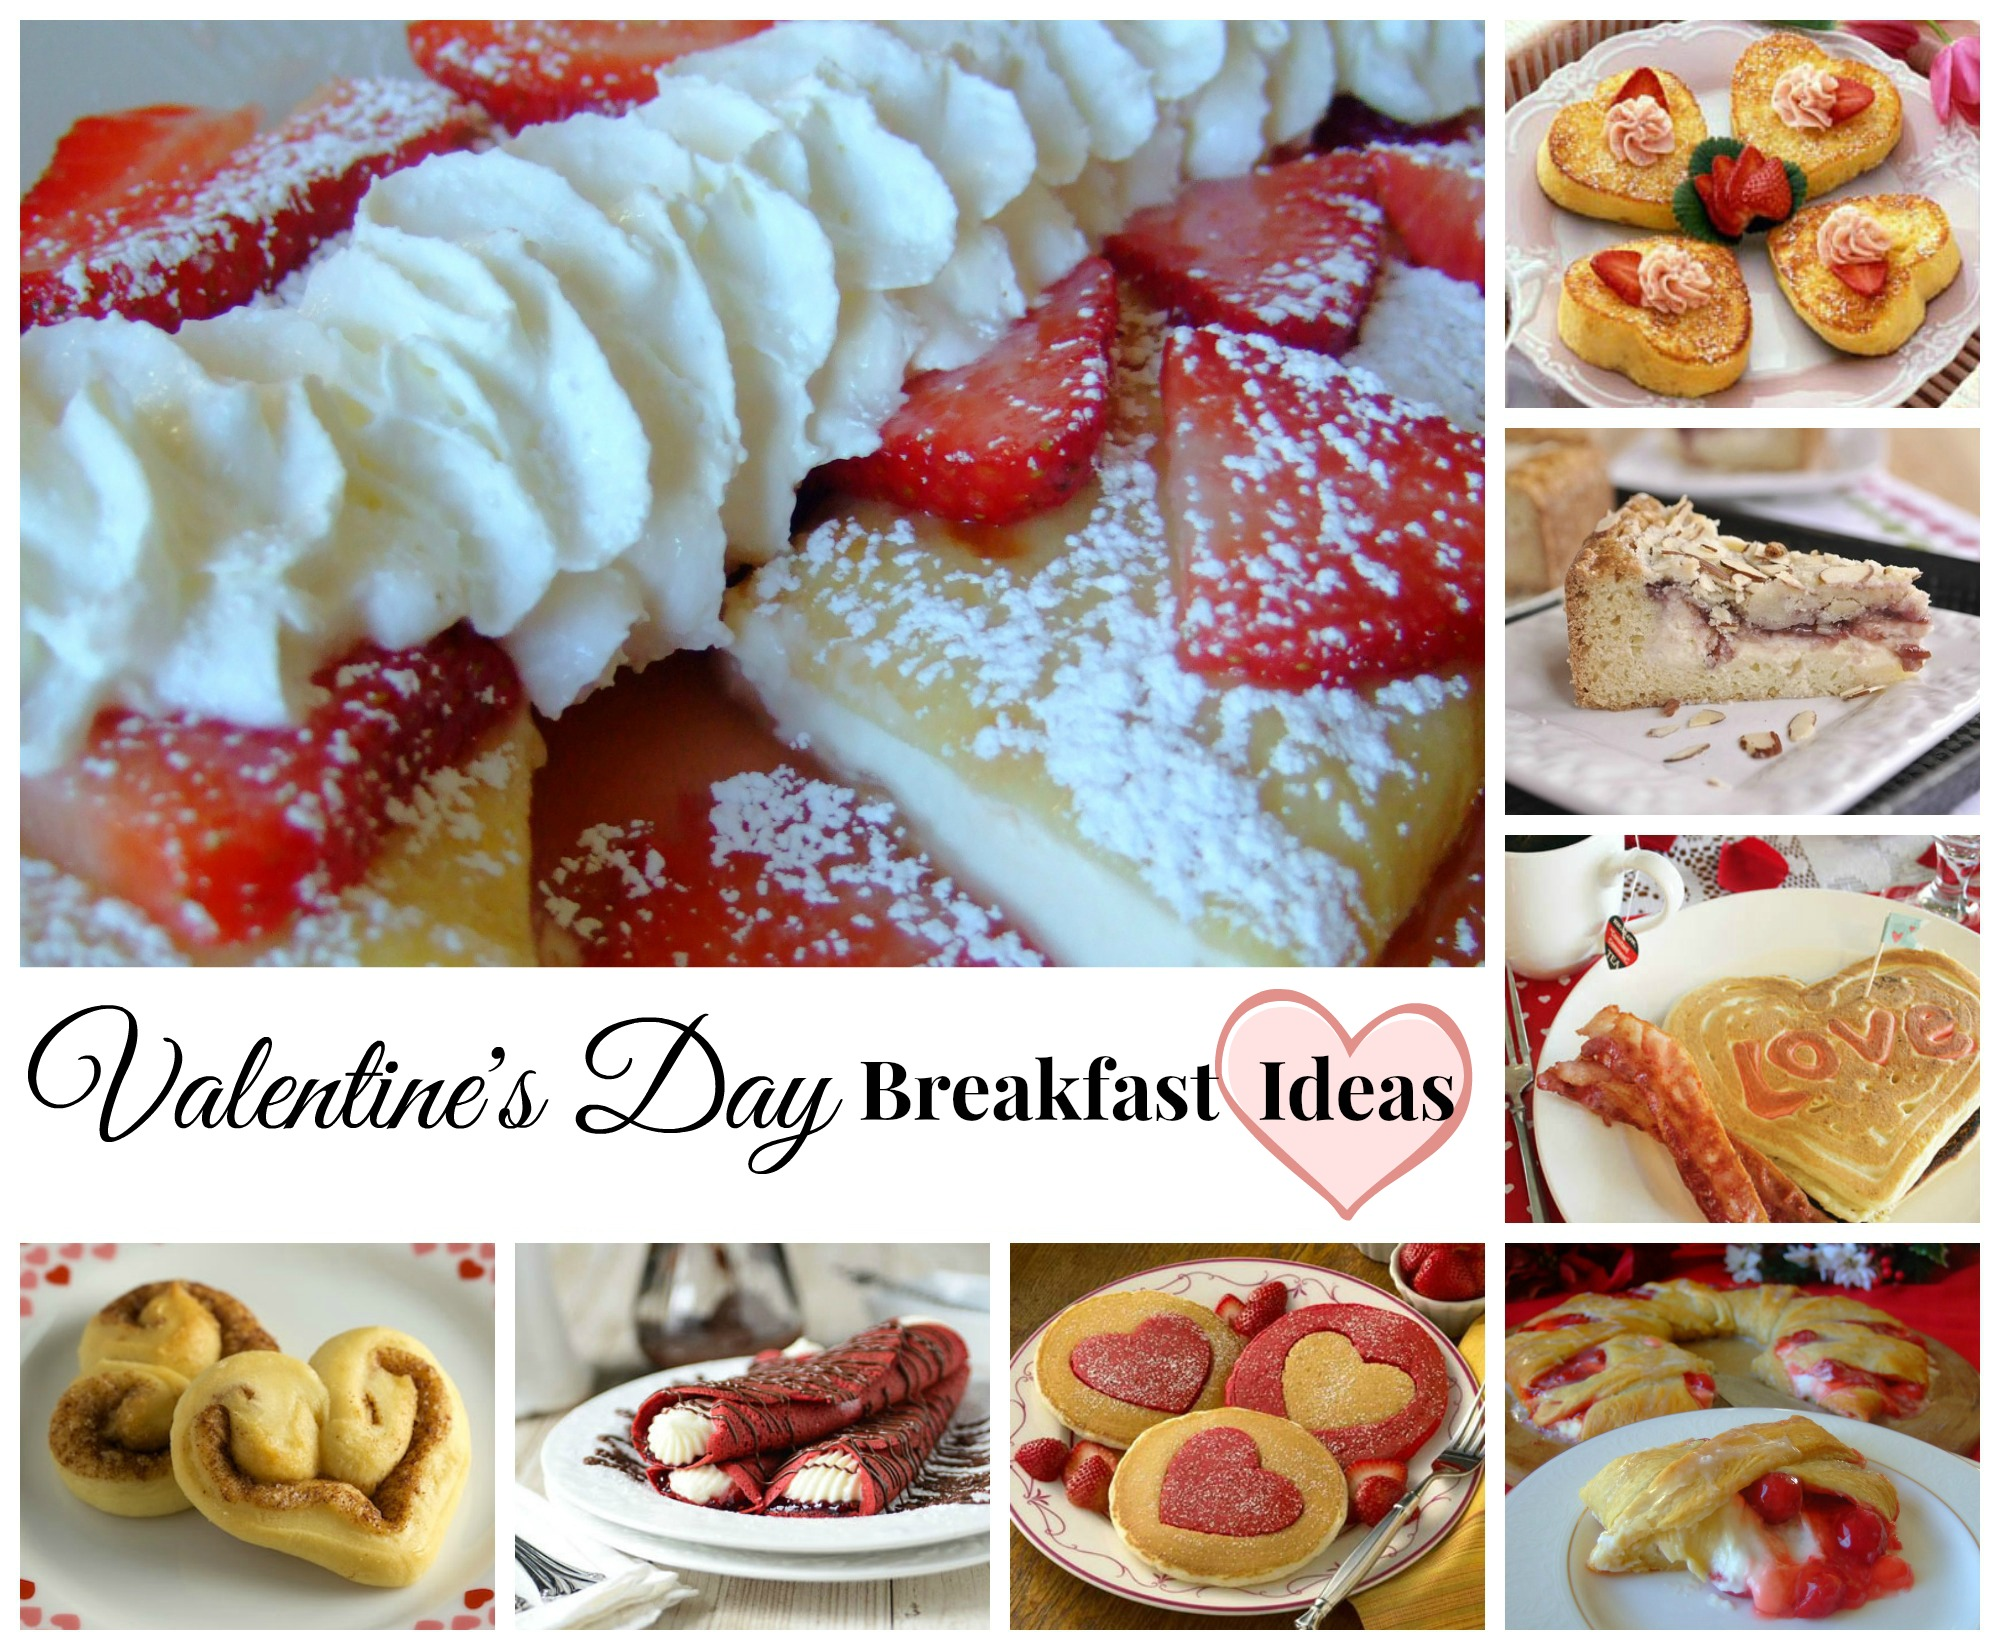 Valentine's Day Breakfast Ideas and Recipes